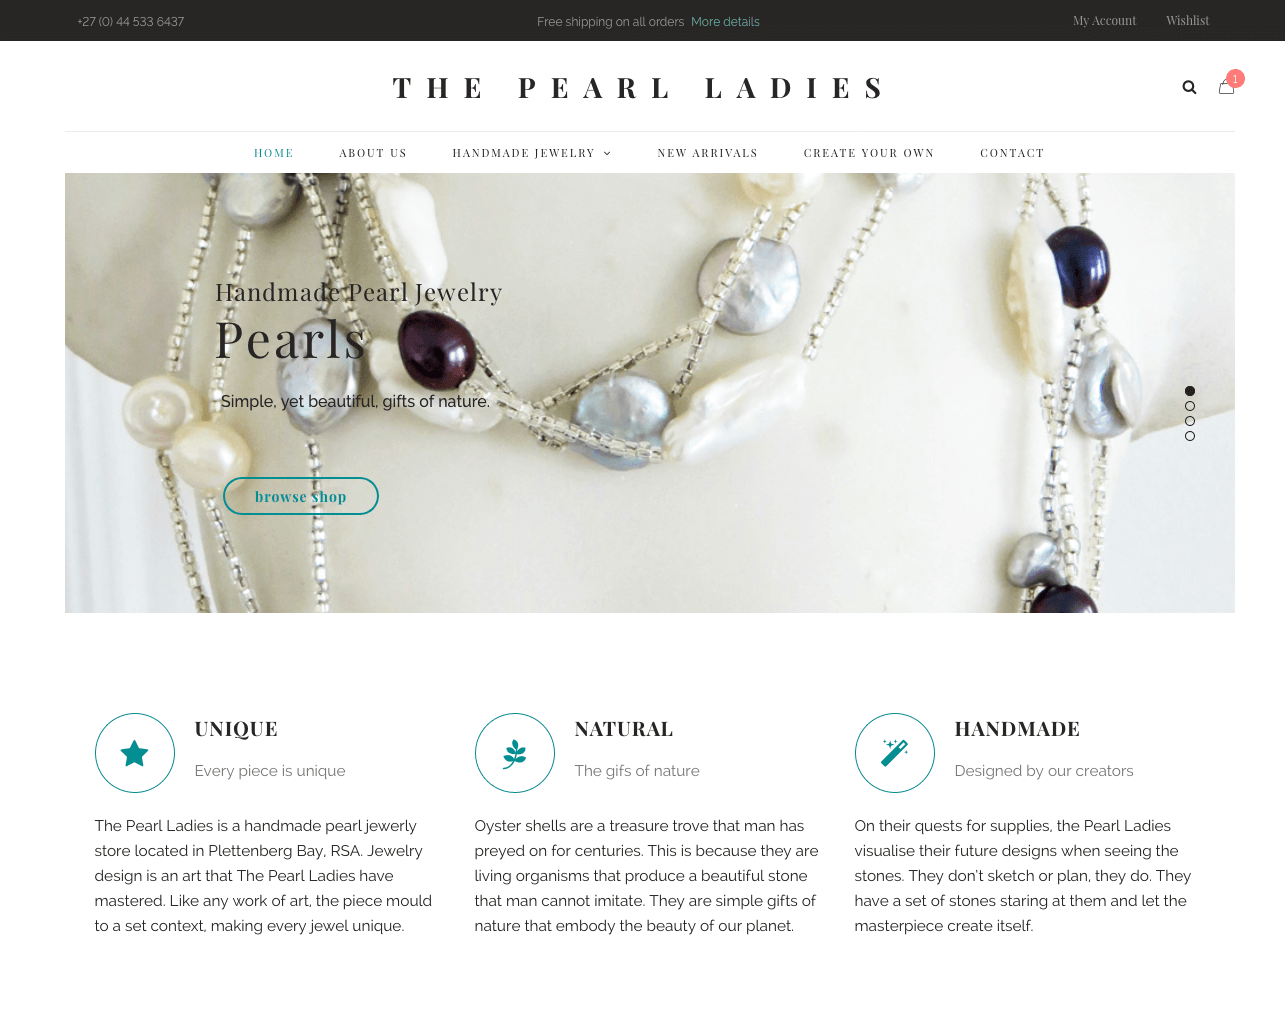 refonte de site e-commerce visuel 2 the pearl ladies